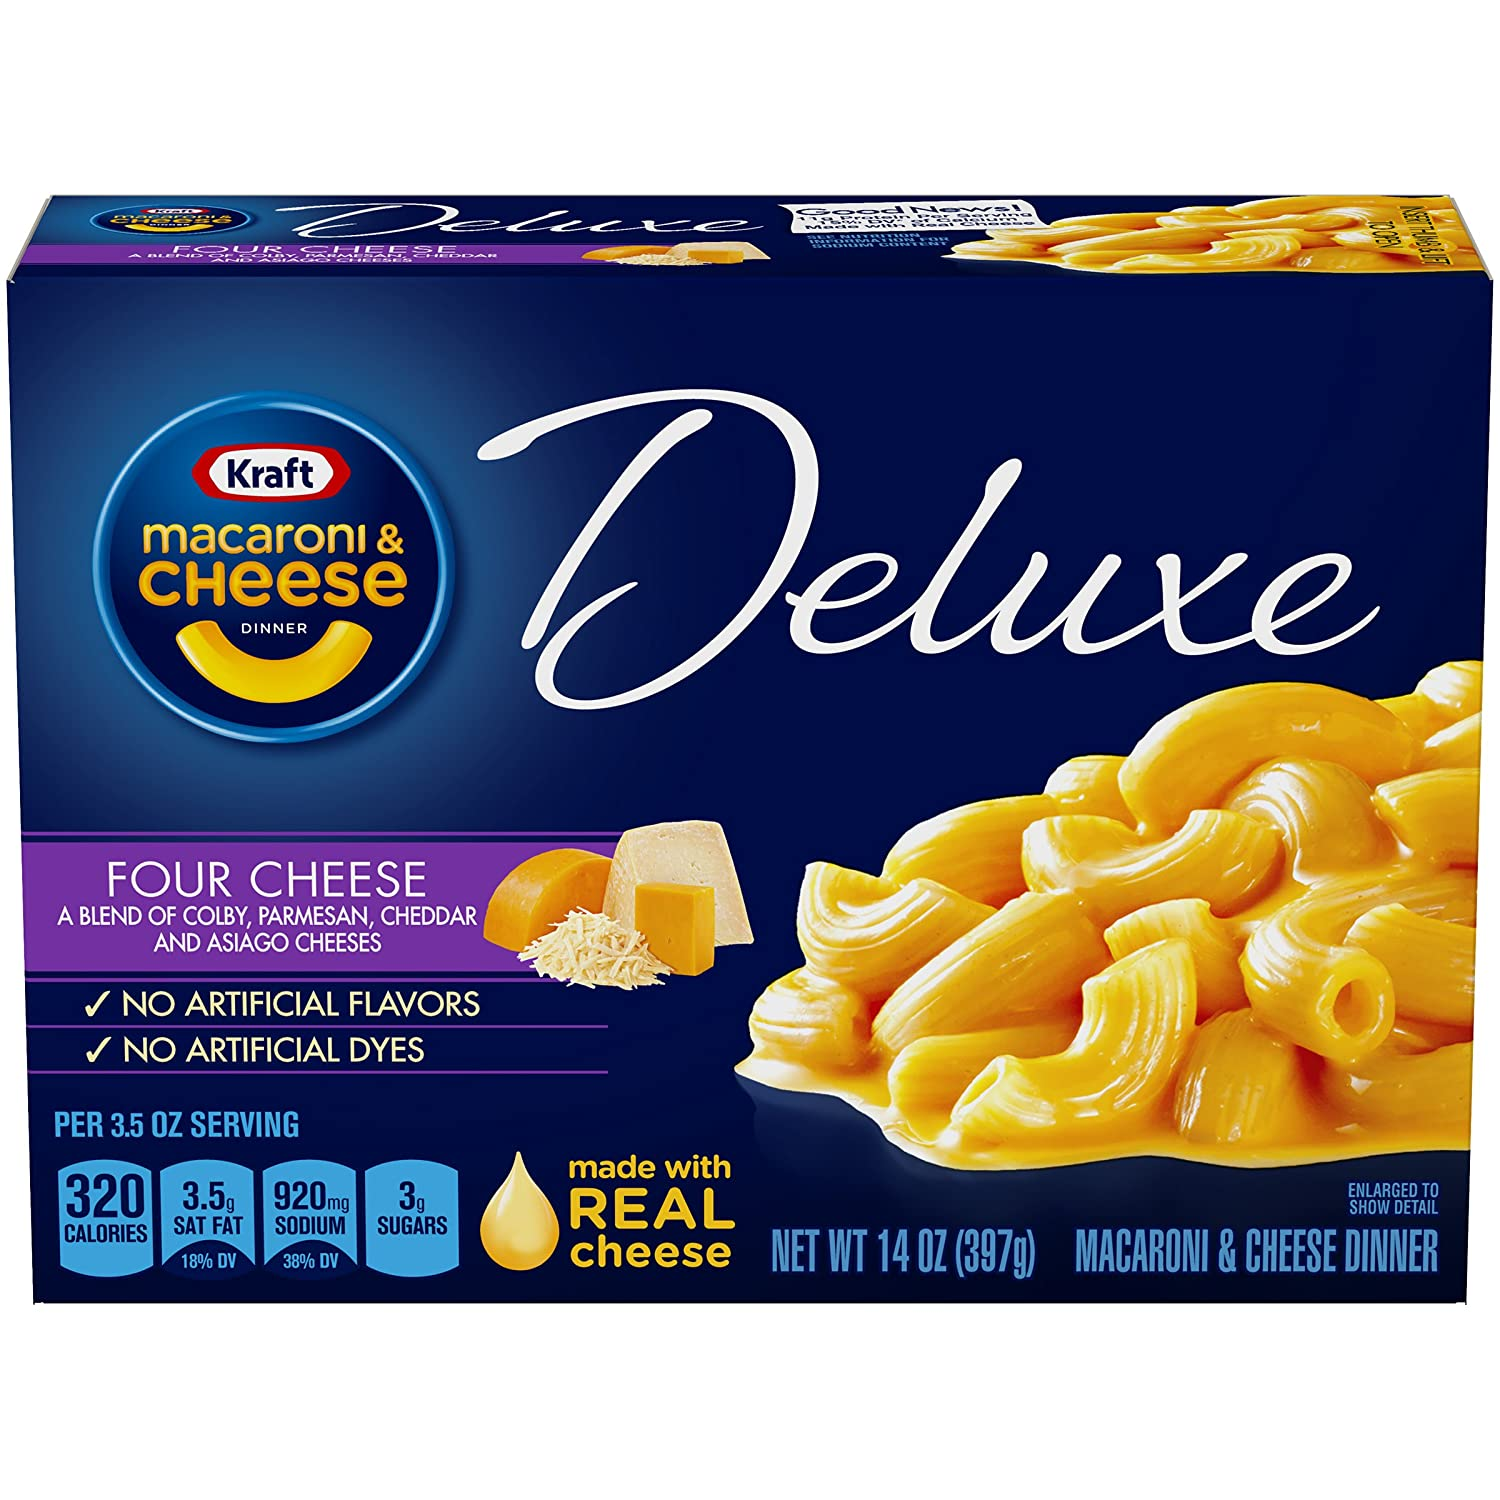 Kraft Deluxe Four Cheese Macaroni & Cheese Dinner (14 oz Box)